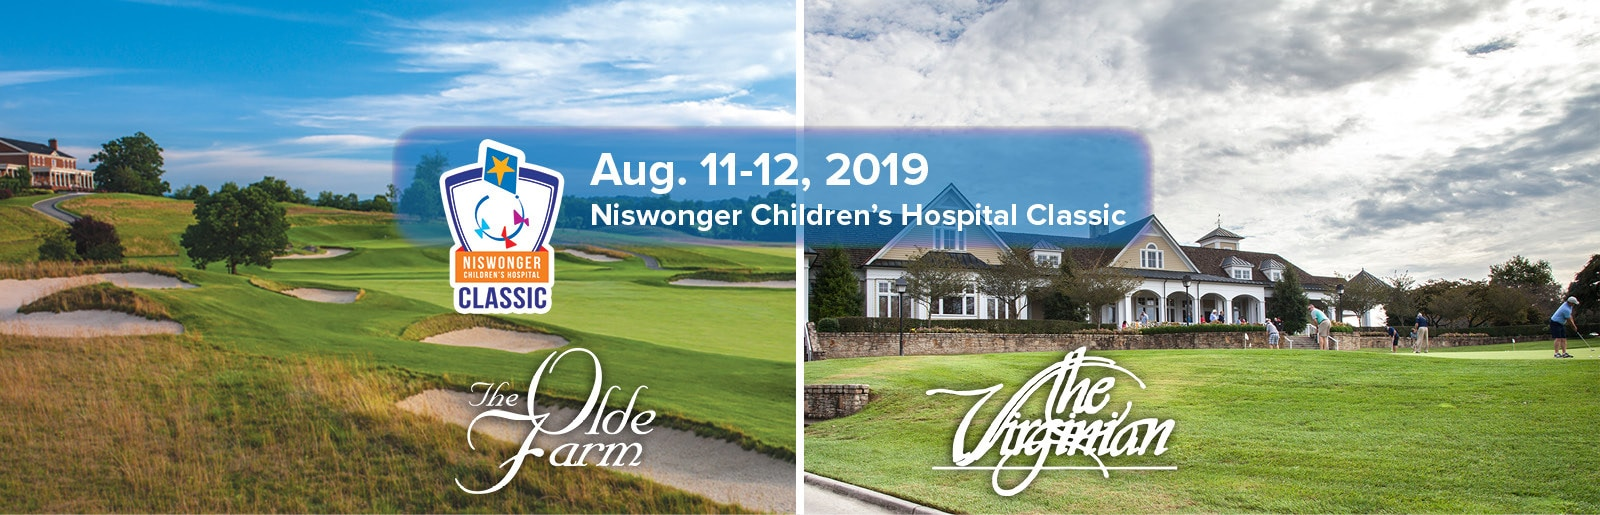 Niswonger Children's Hospital Classic, August 11 and 12, 2019 at The Olde Farm and The Virginian